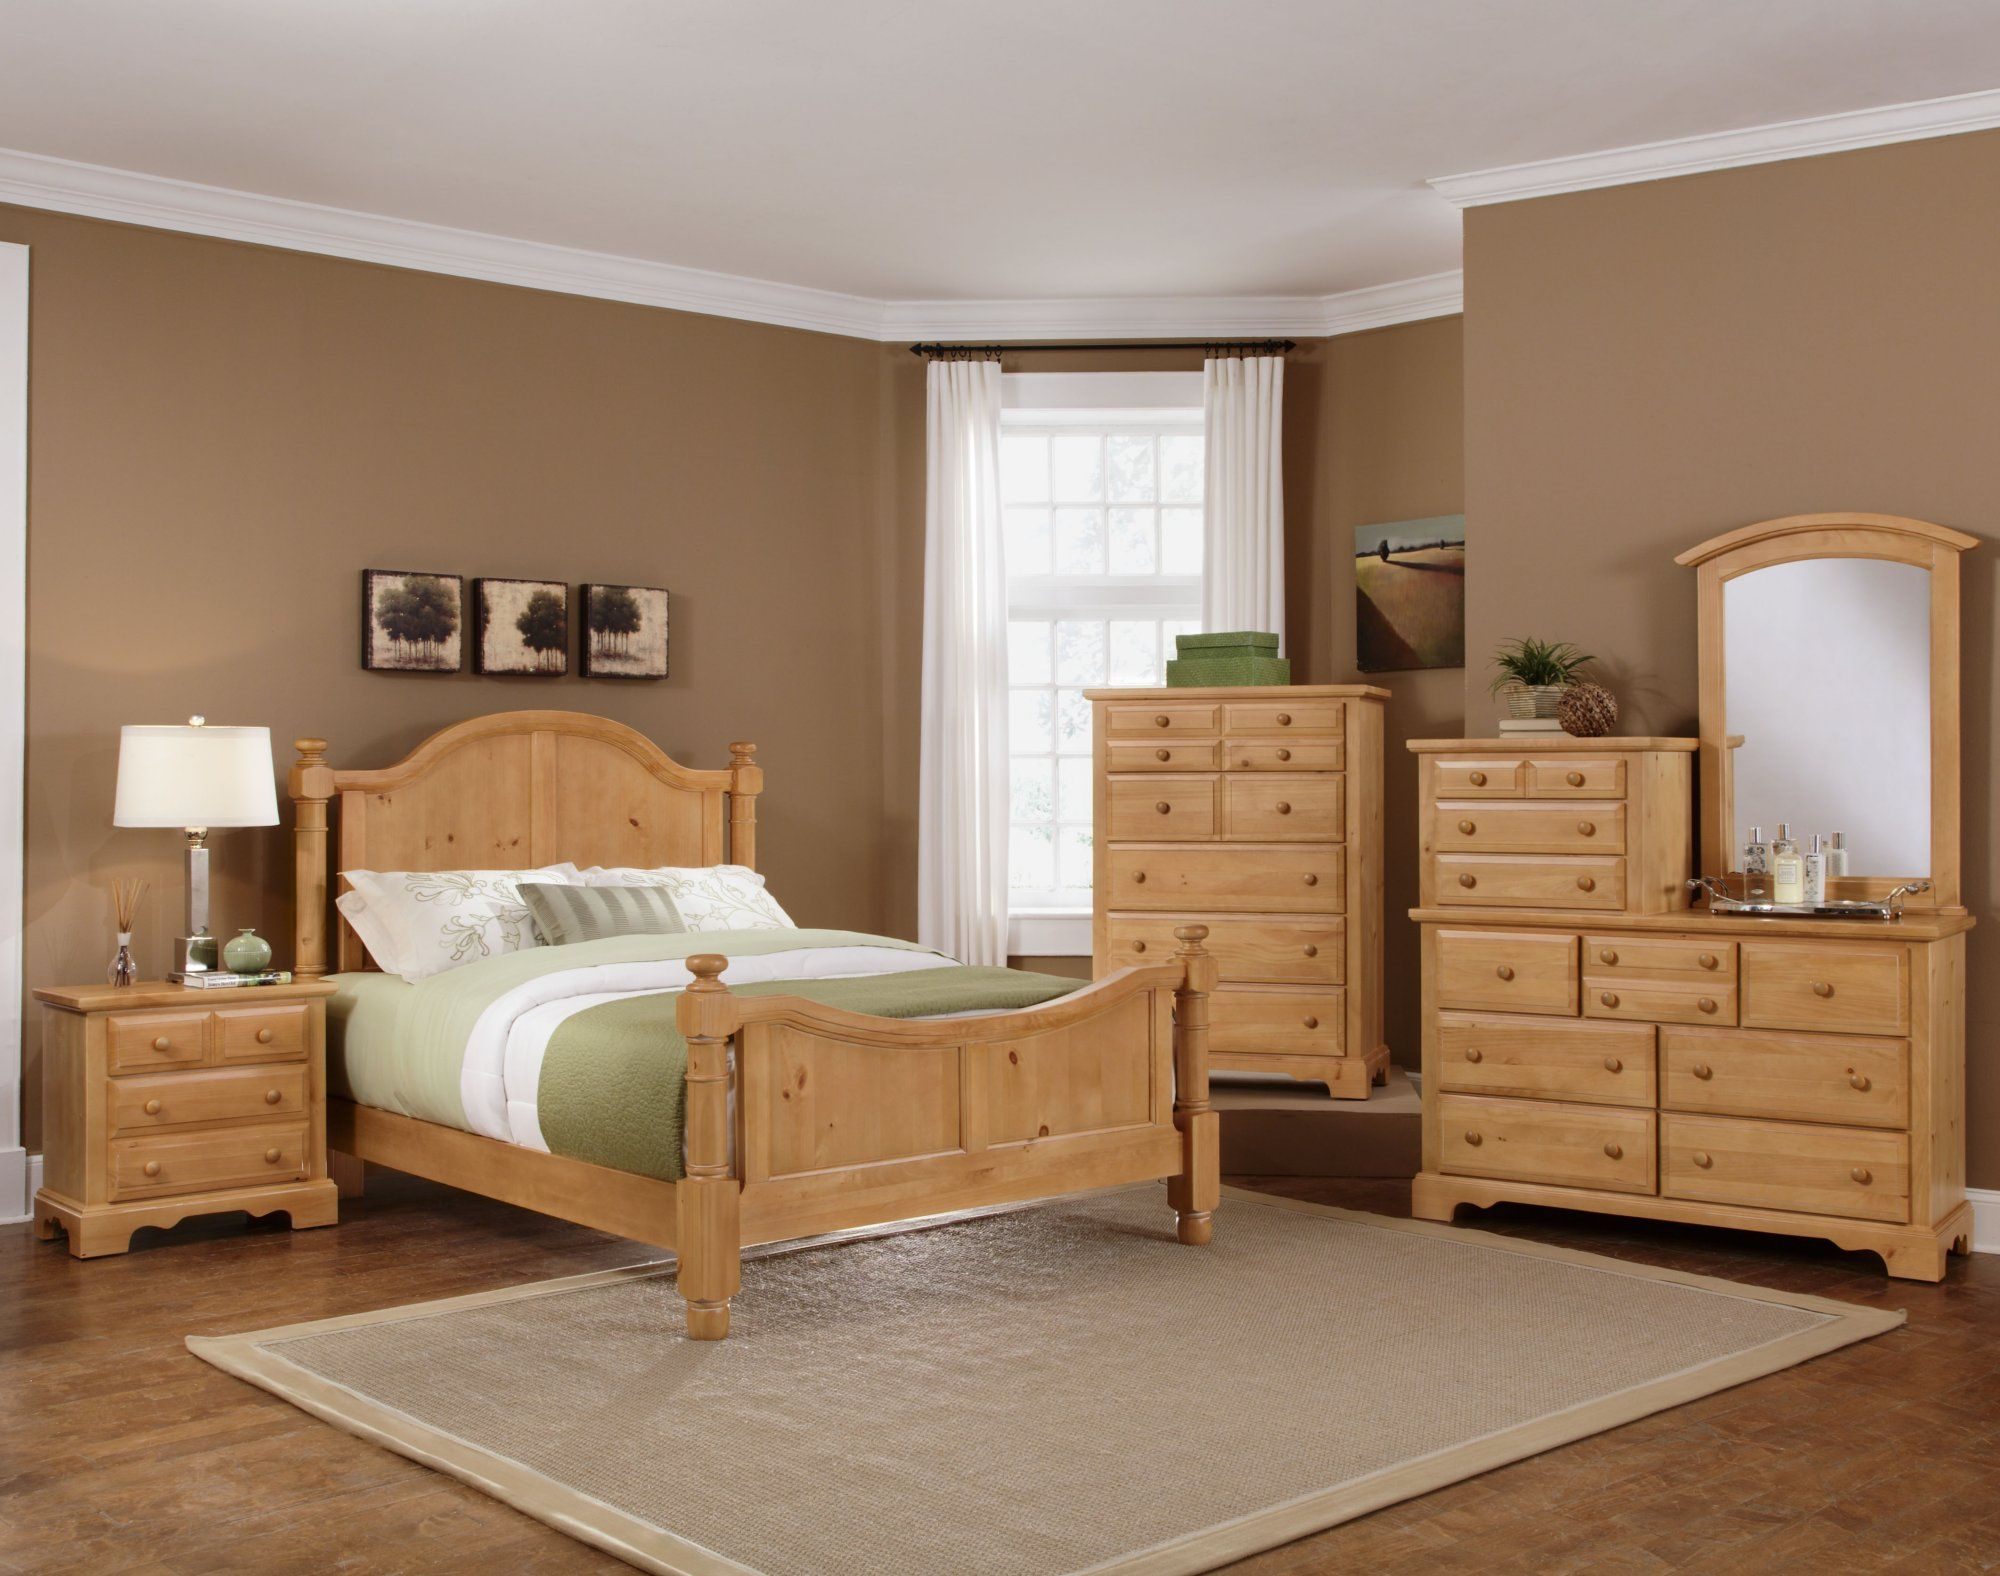 The Vaughan Bassett Farmhouse Washed Pine Bedroom Suite At Miller Brothers Furniture Is A